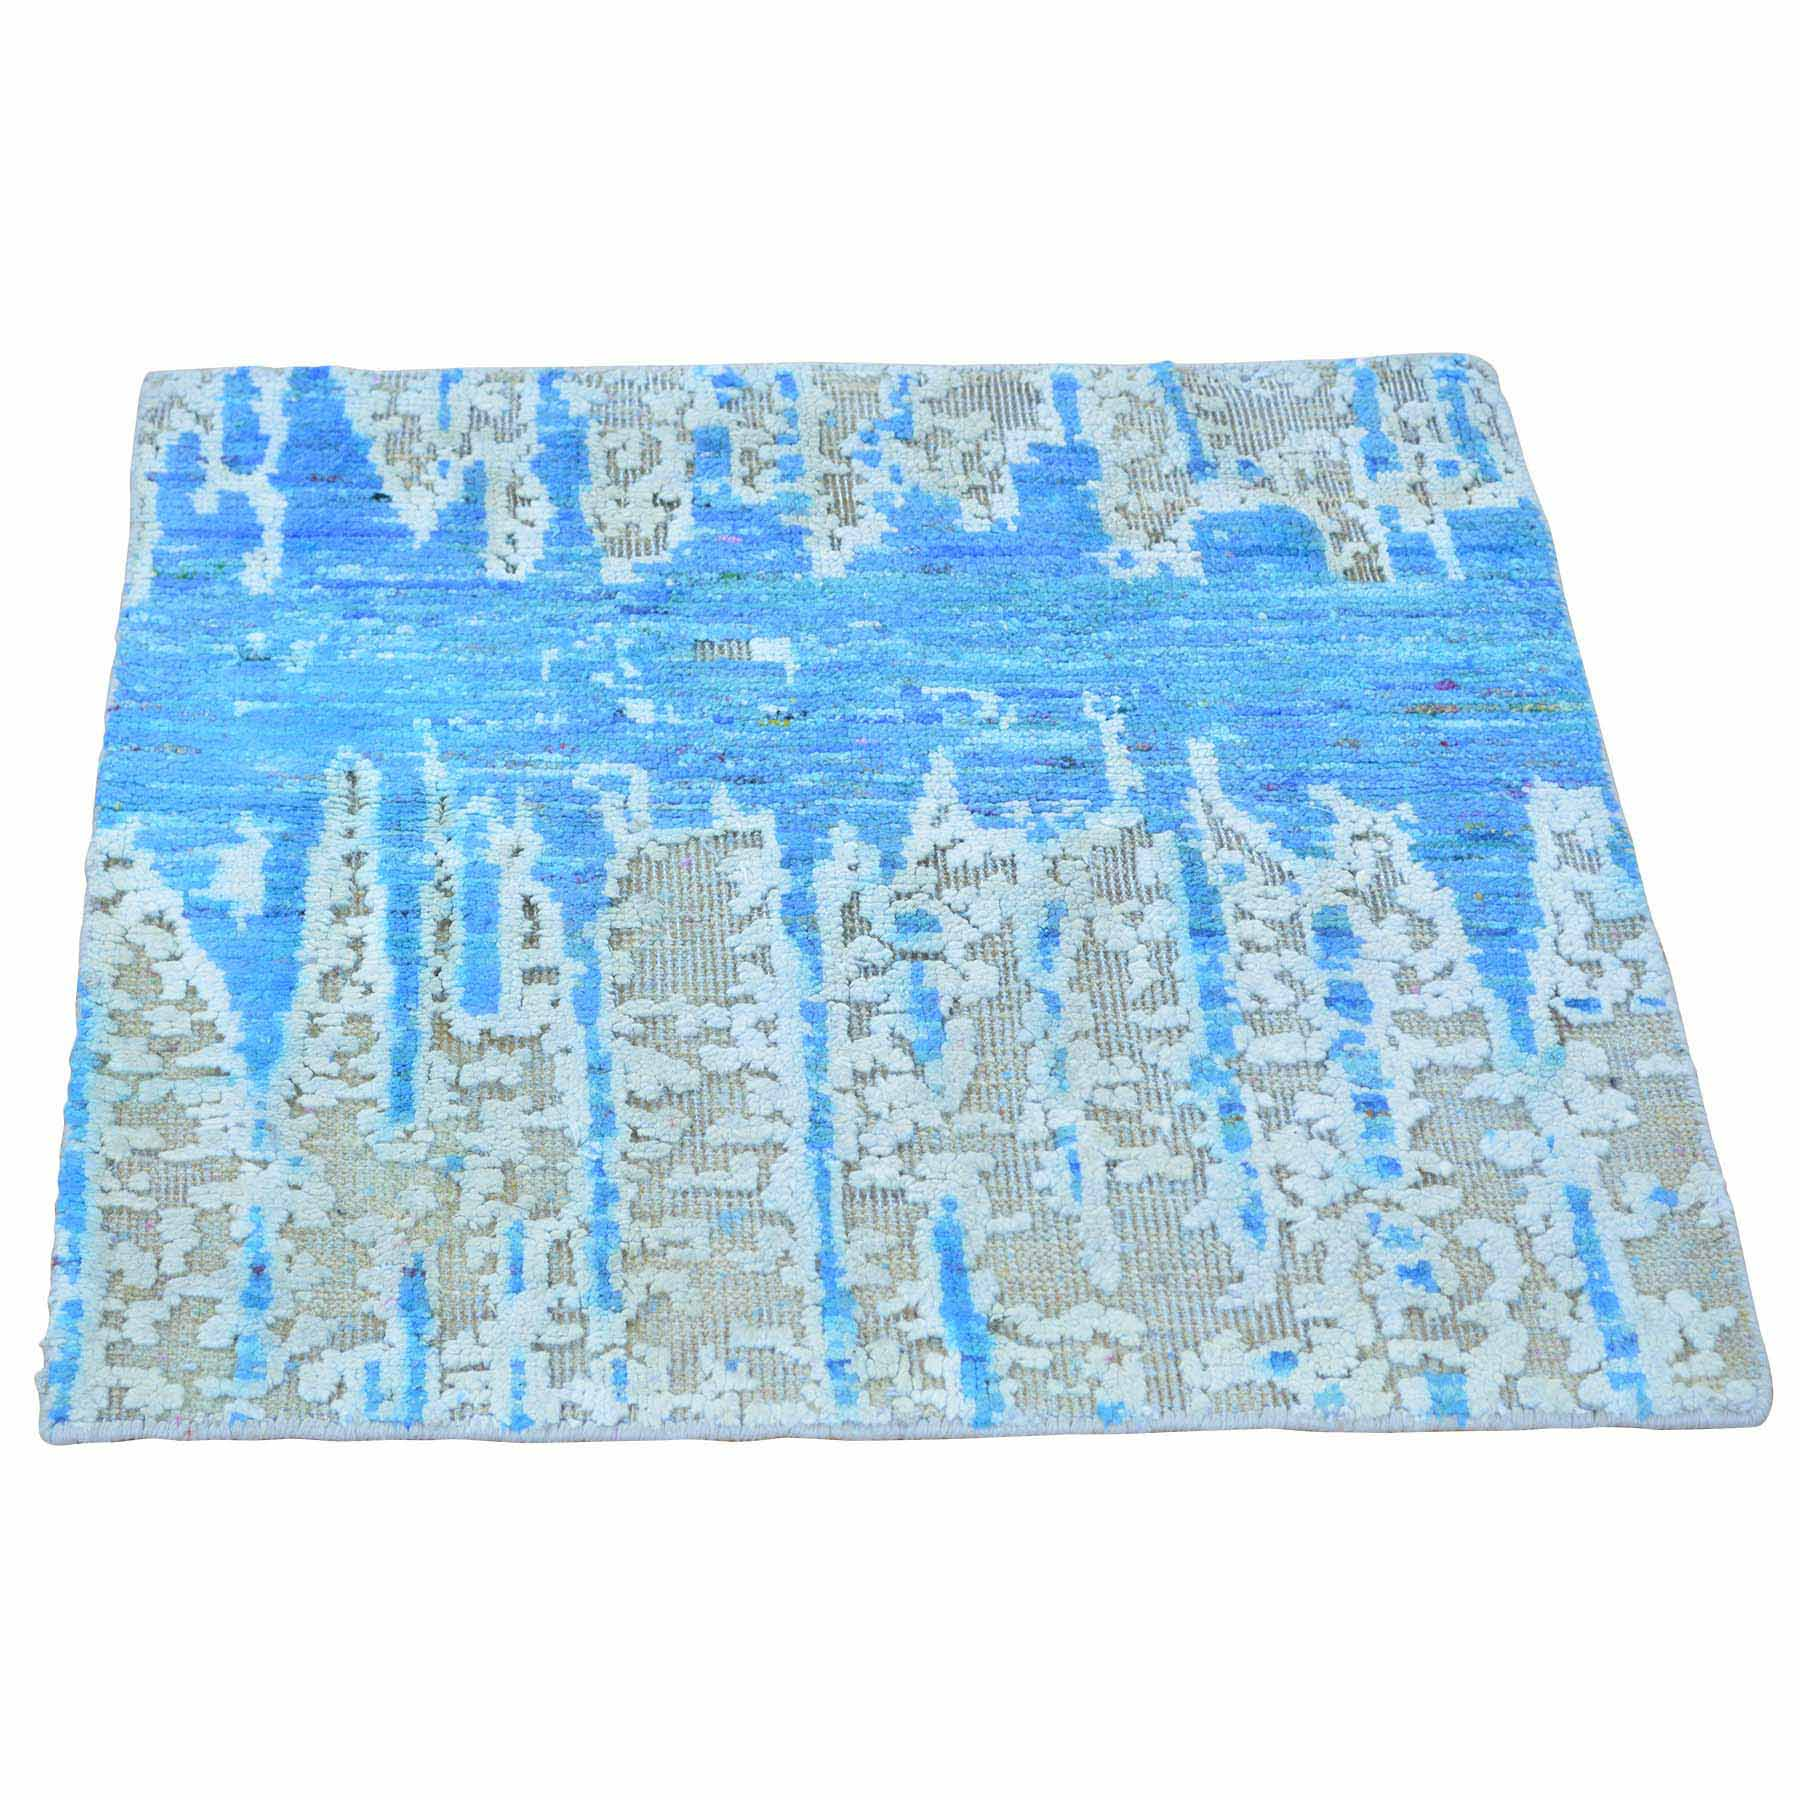 Modern-and-Contemporary-Hand-Knotted-Rug-121580